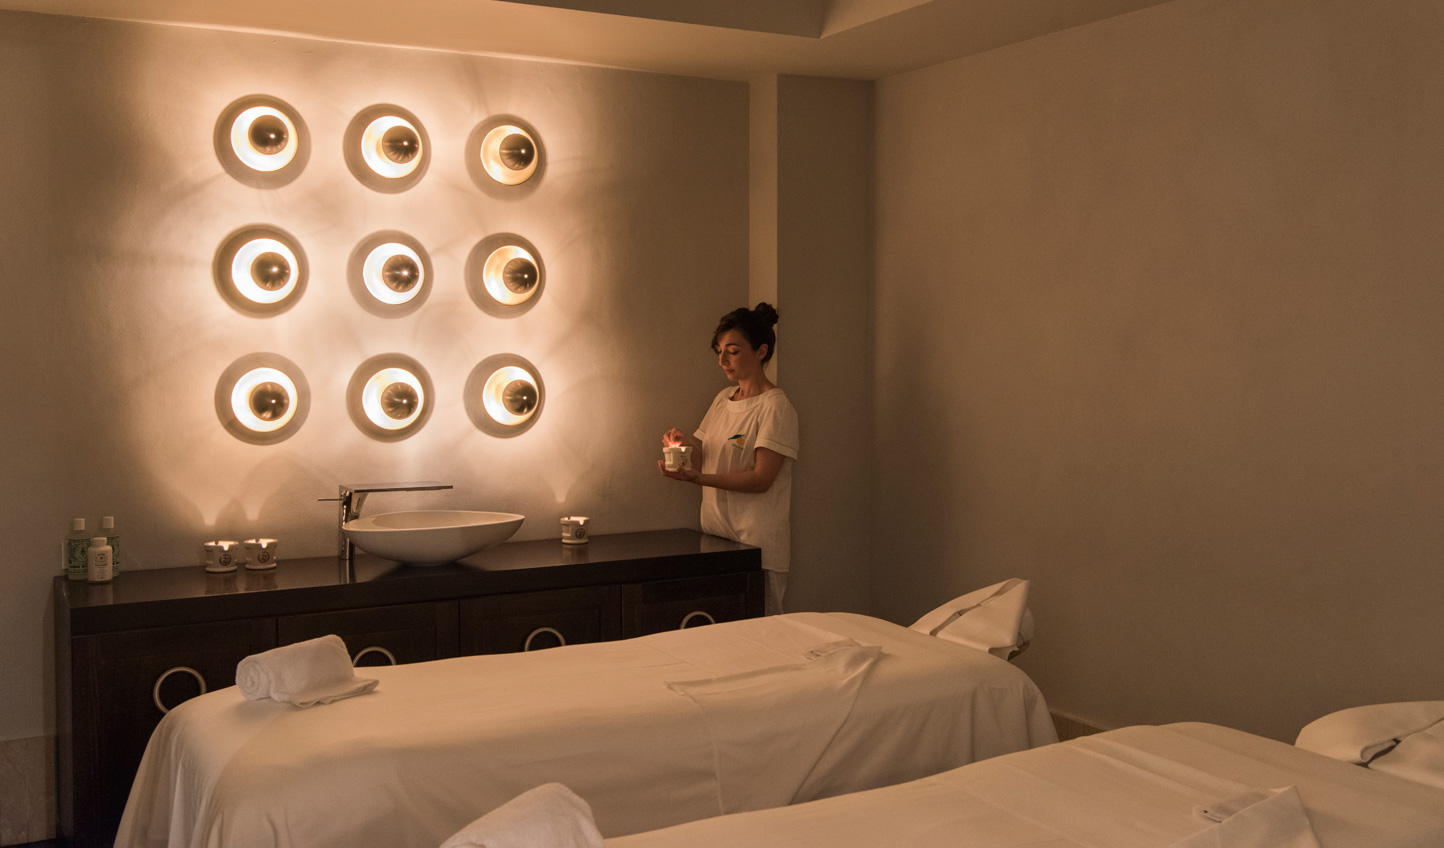 Indulge in a spot of pampering at the spa